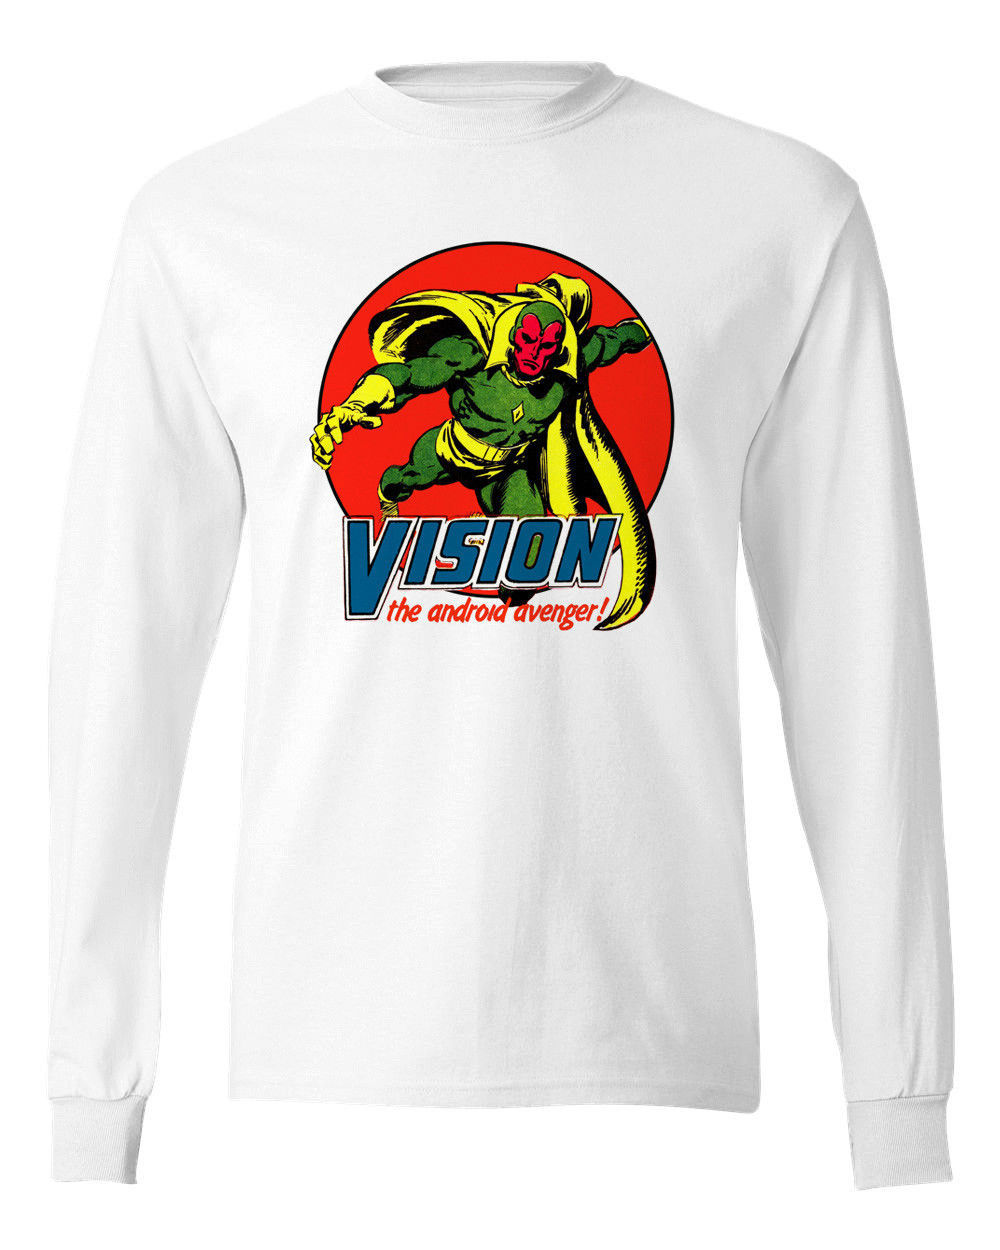 Vision Long Sleeve T shirt  Marvel Comics 100% cotton graphic tee superhero